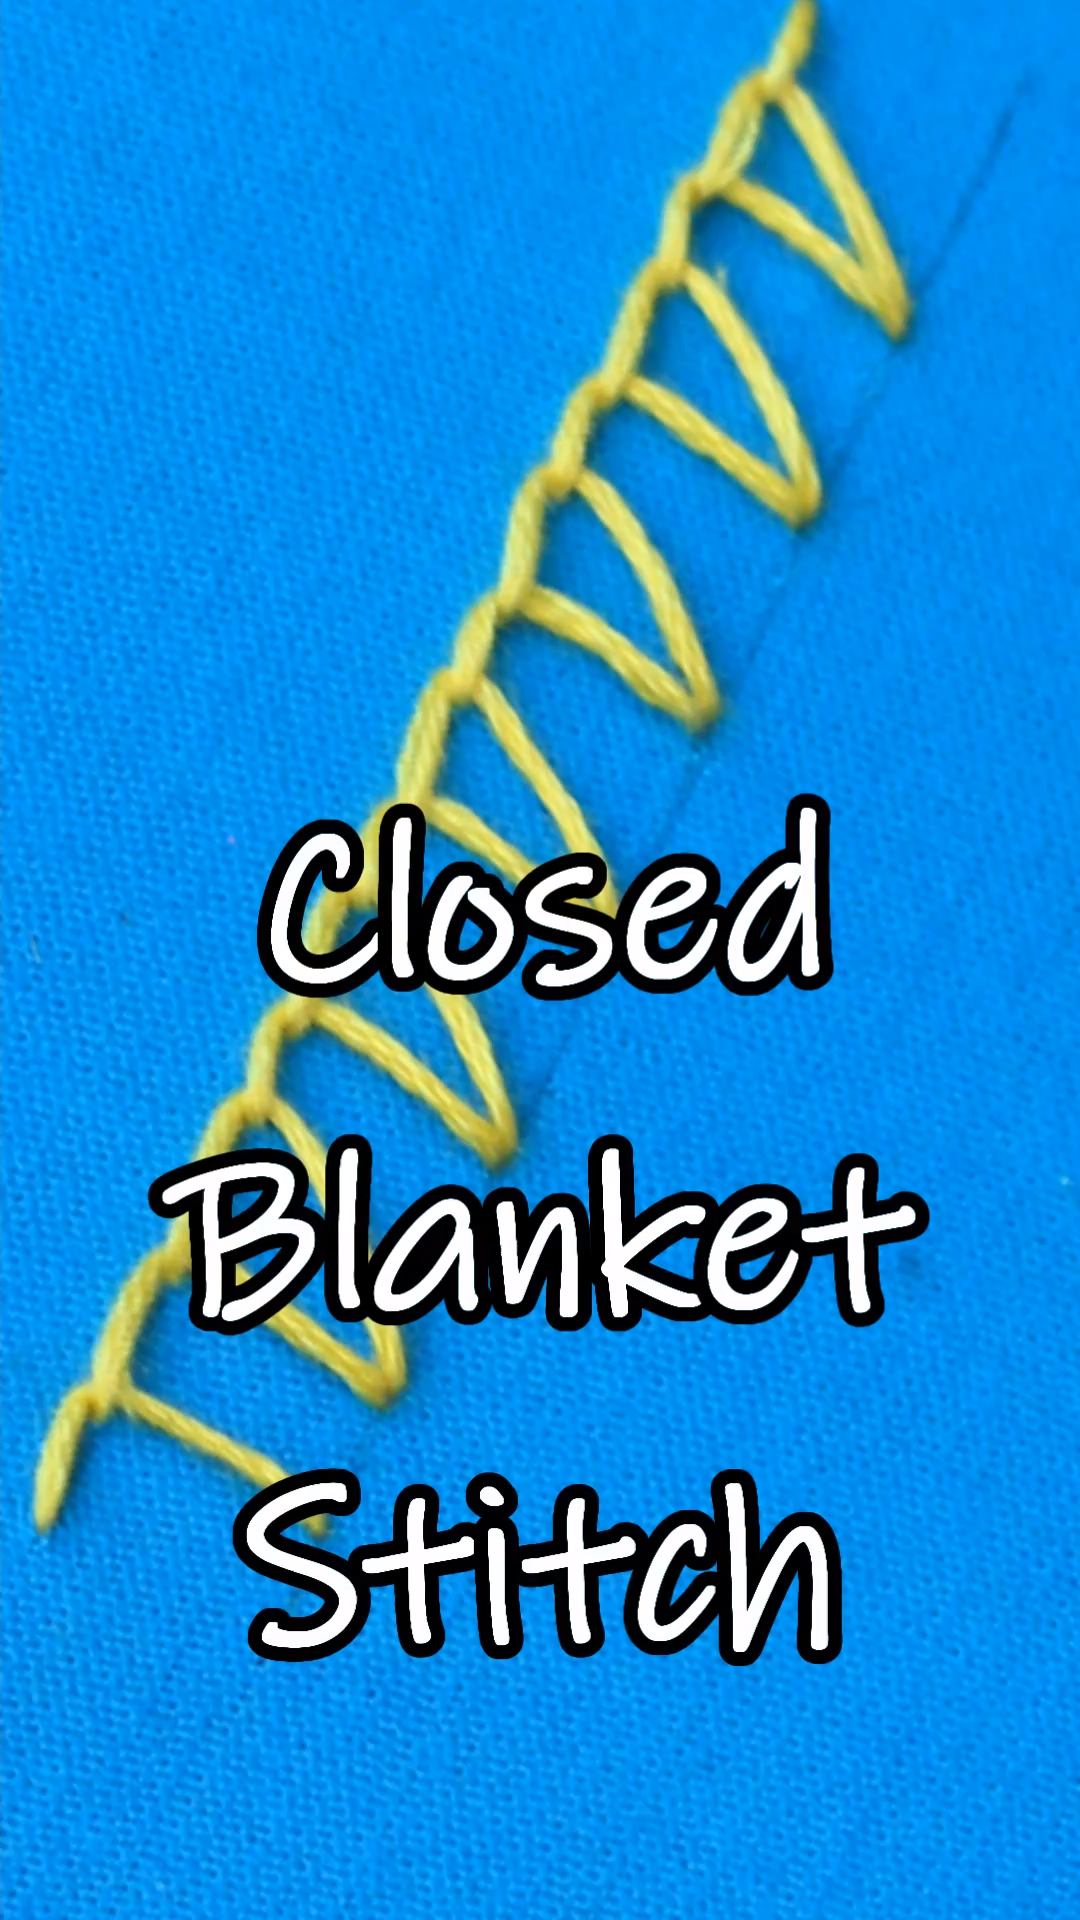 Photo of Closed Blanket Stitch #embroidery